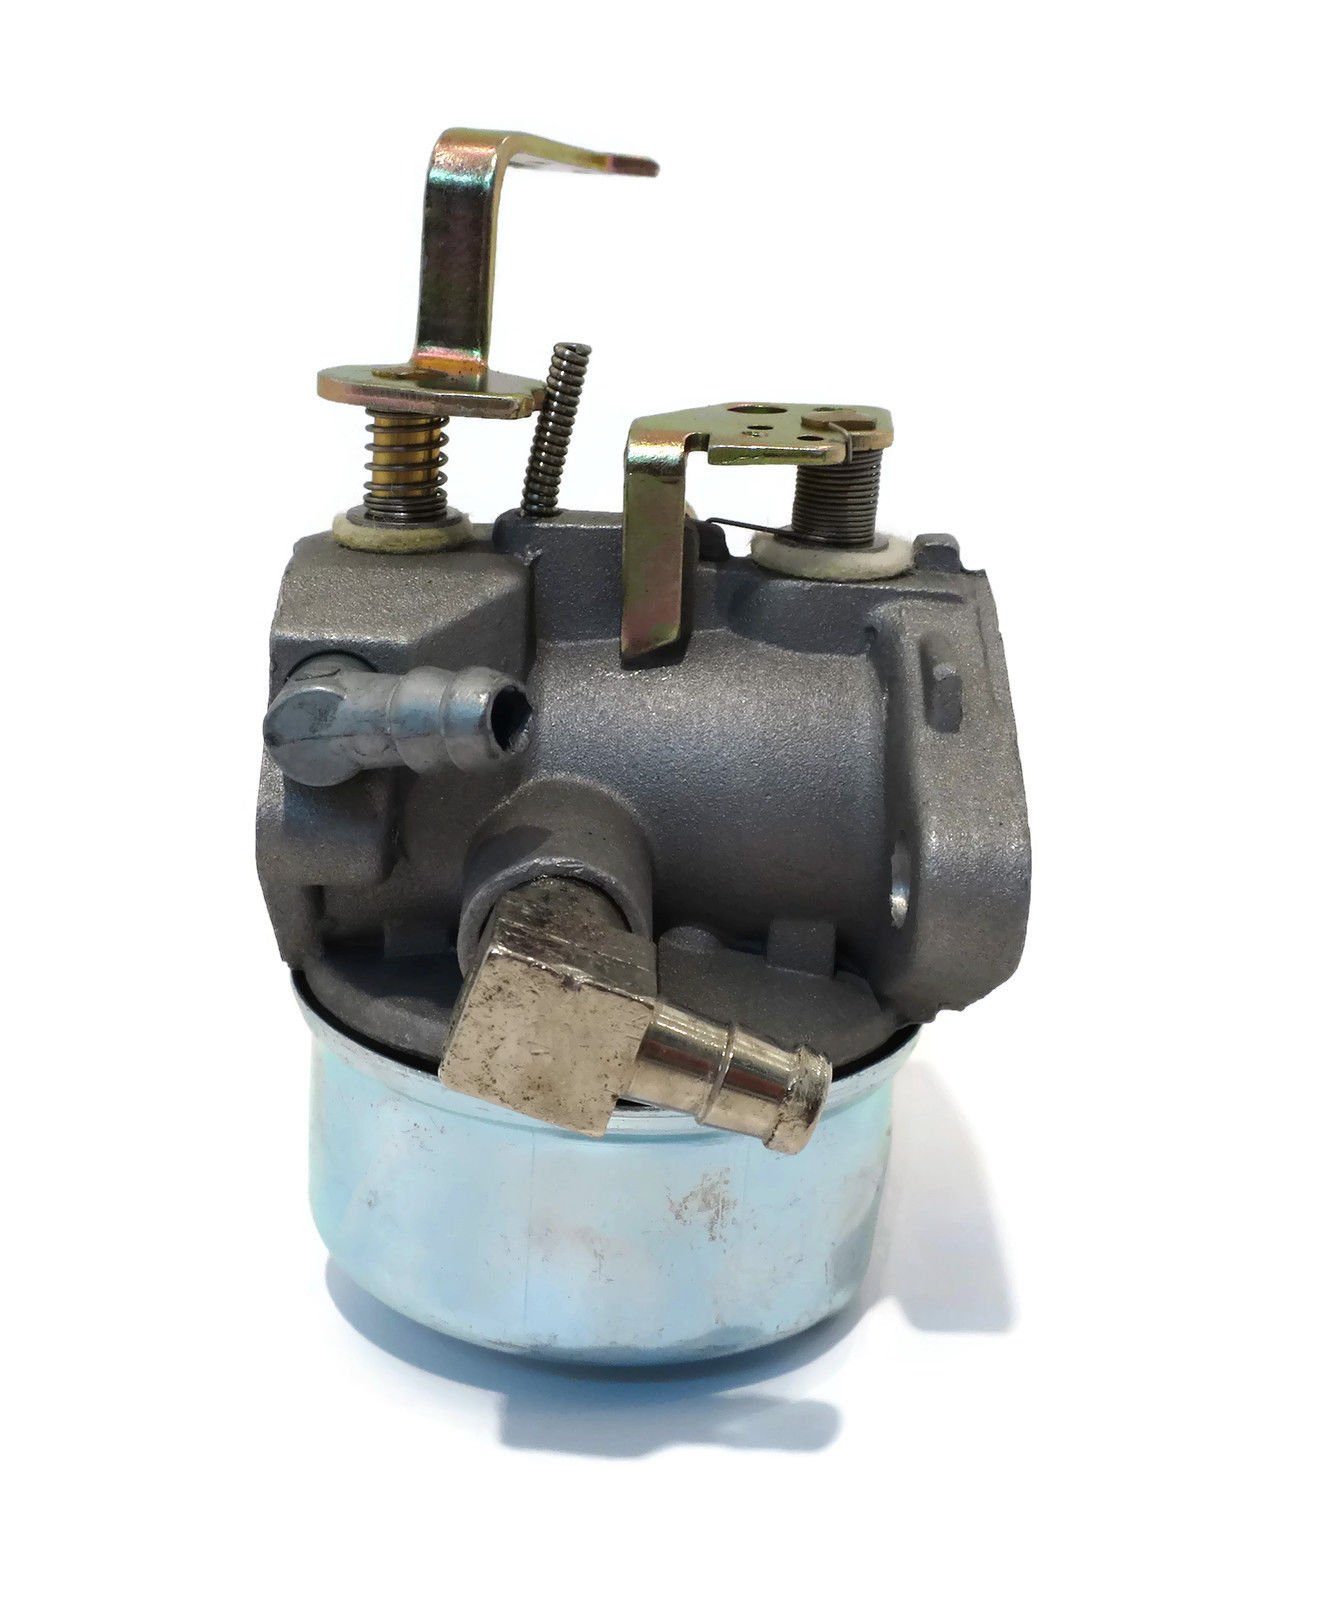 The ROP Shop Carburetor Carb for Tecumseh 640112 Stens 520-954, 056-318 HM80 HM90 HM100 Motor by The ROP Shop (Image #5)